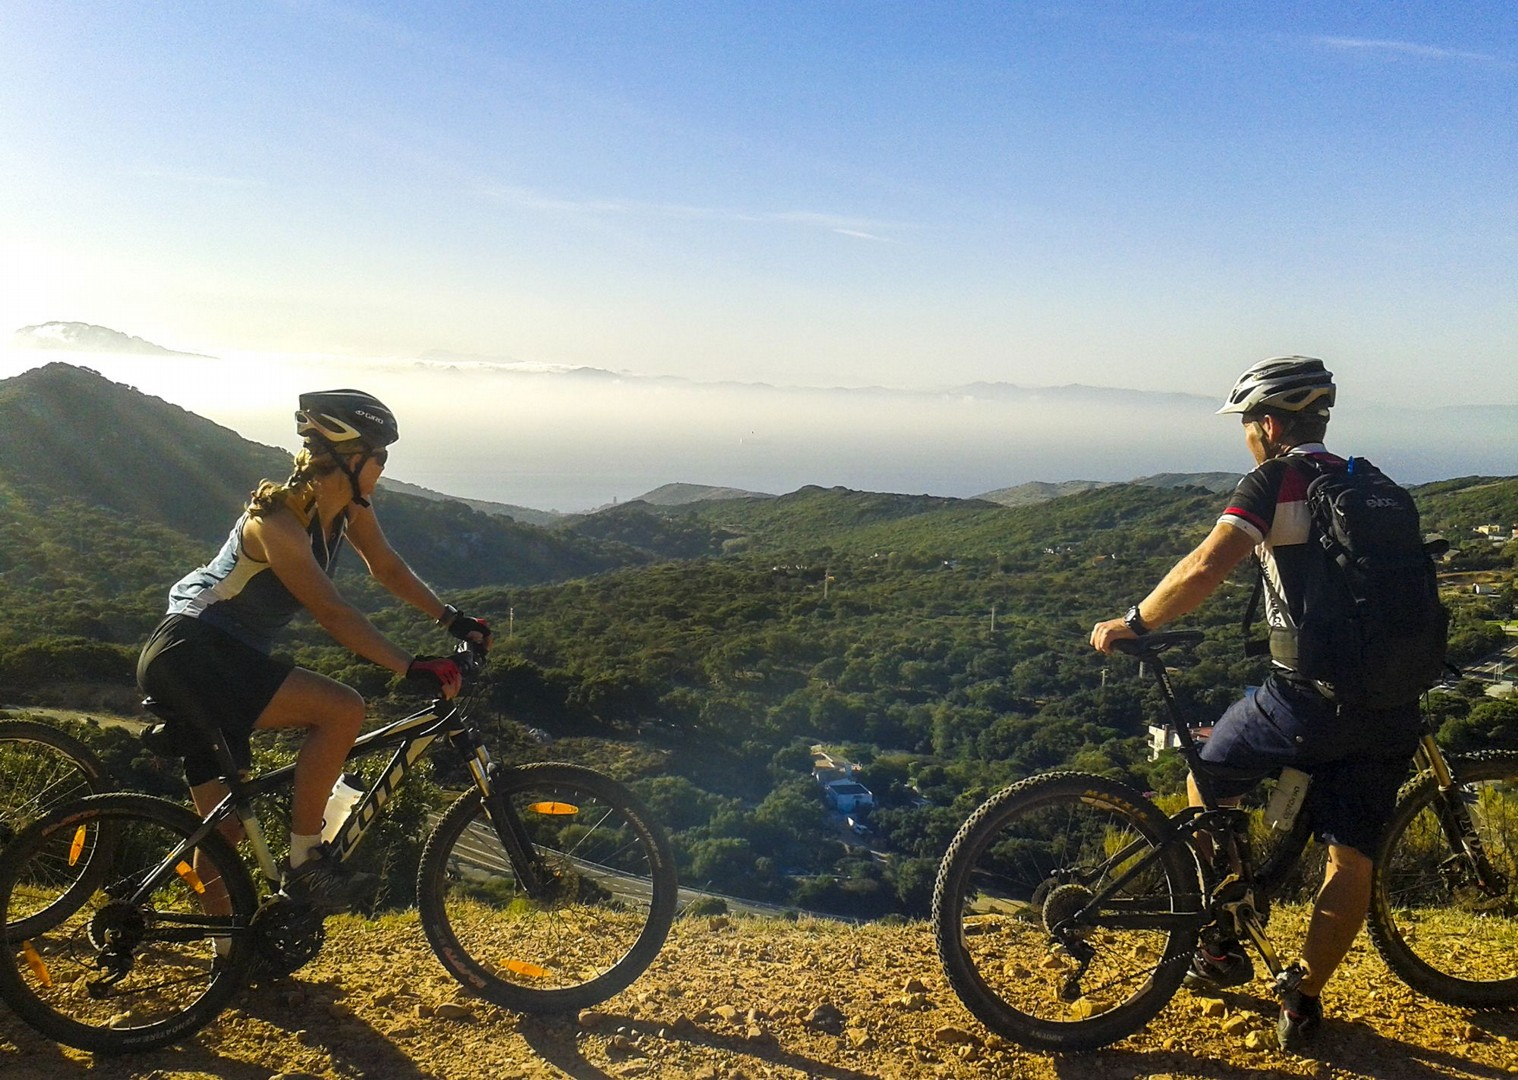 20141024_102933-2.jpg - Southern Spain - Sierras to the Sea - Self-Guided Leisure Cycling Holiday - Leisure Cycling